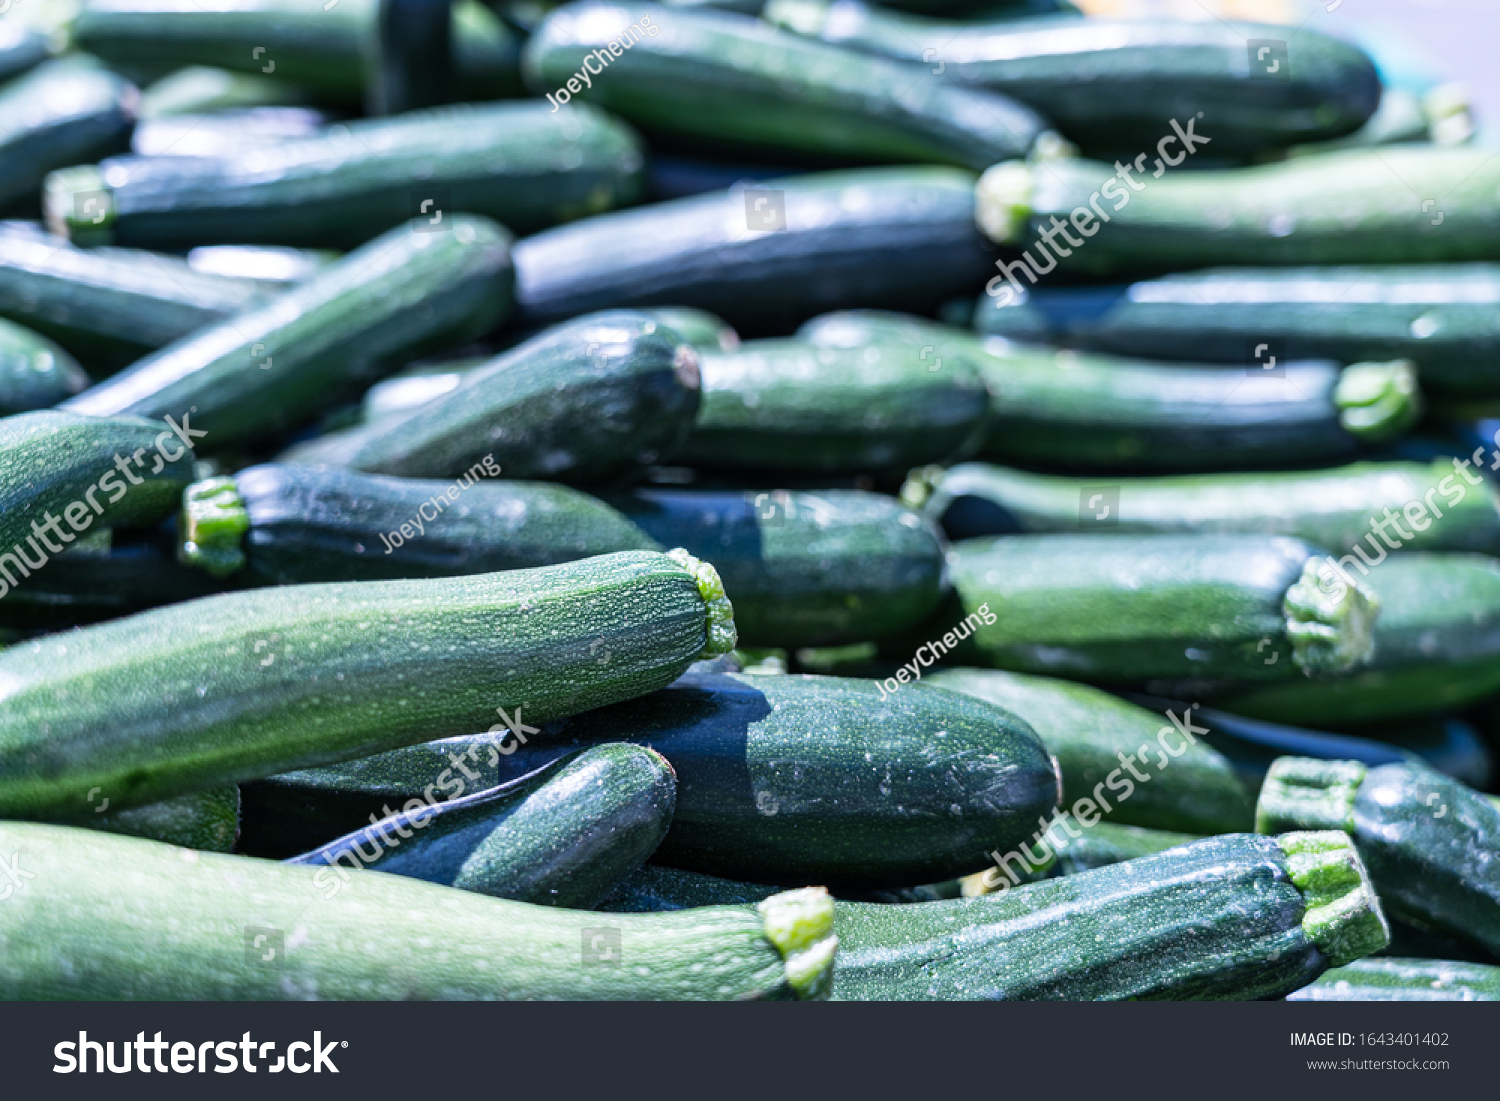 Food background - fresh  zucchinis or courgettes #1643401402